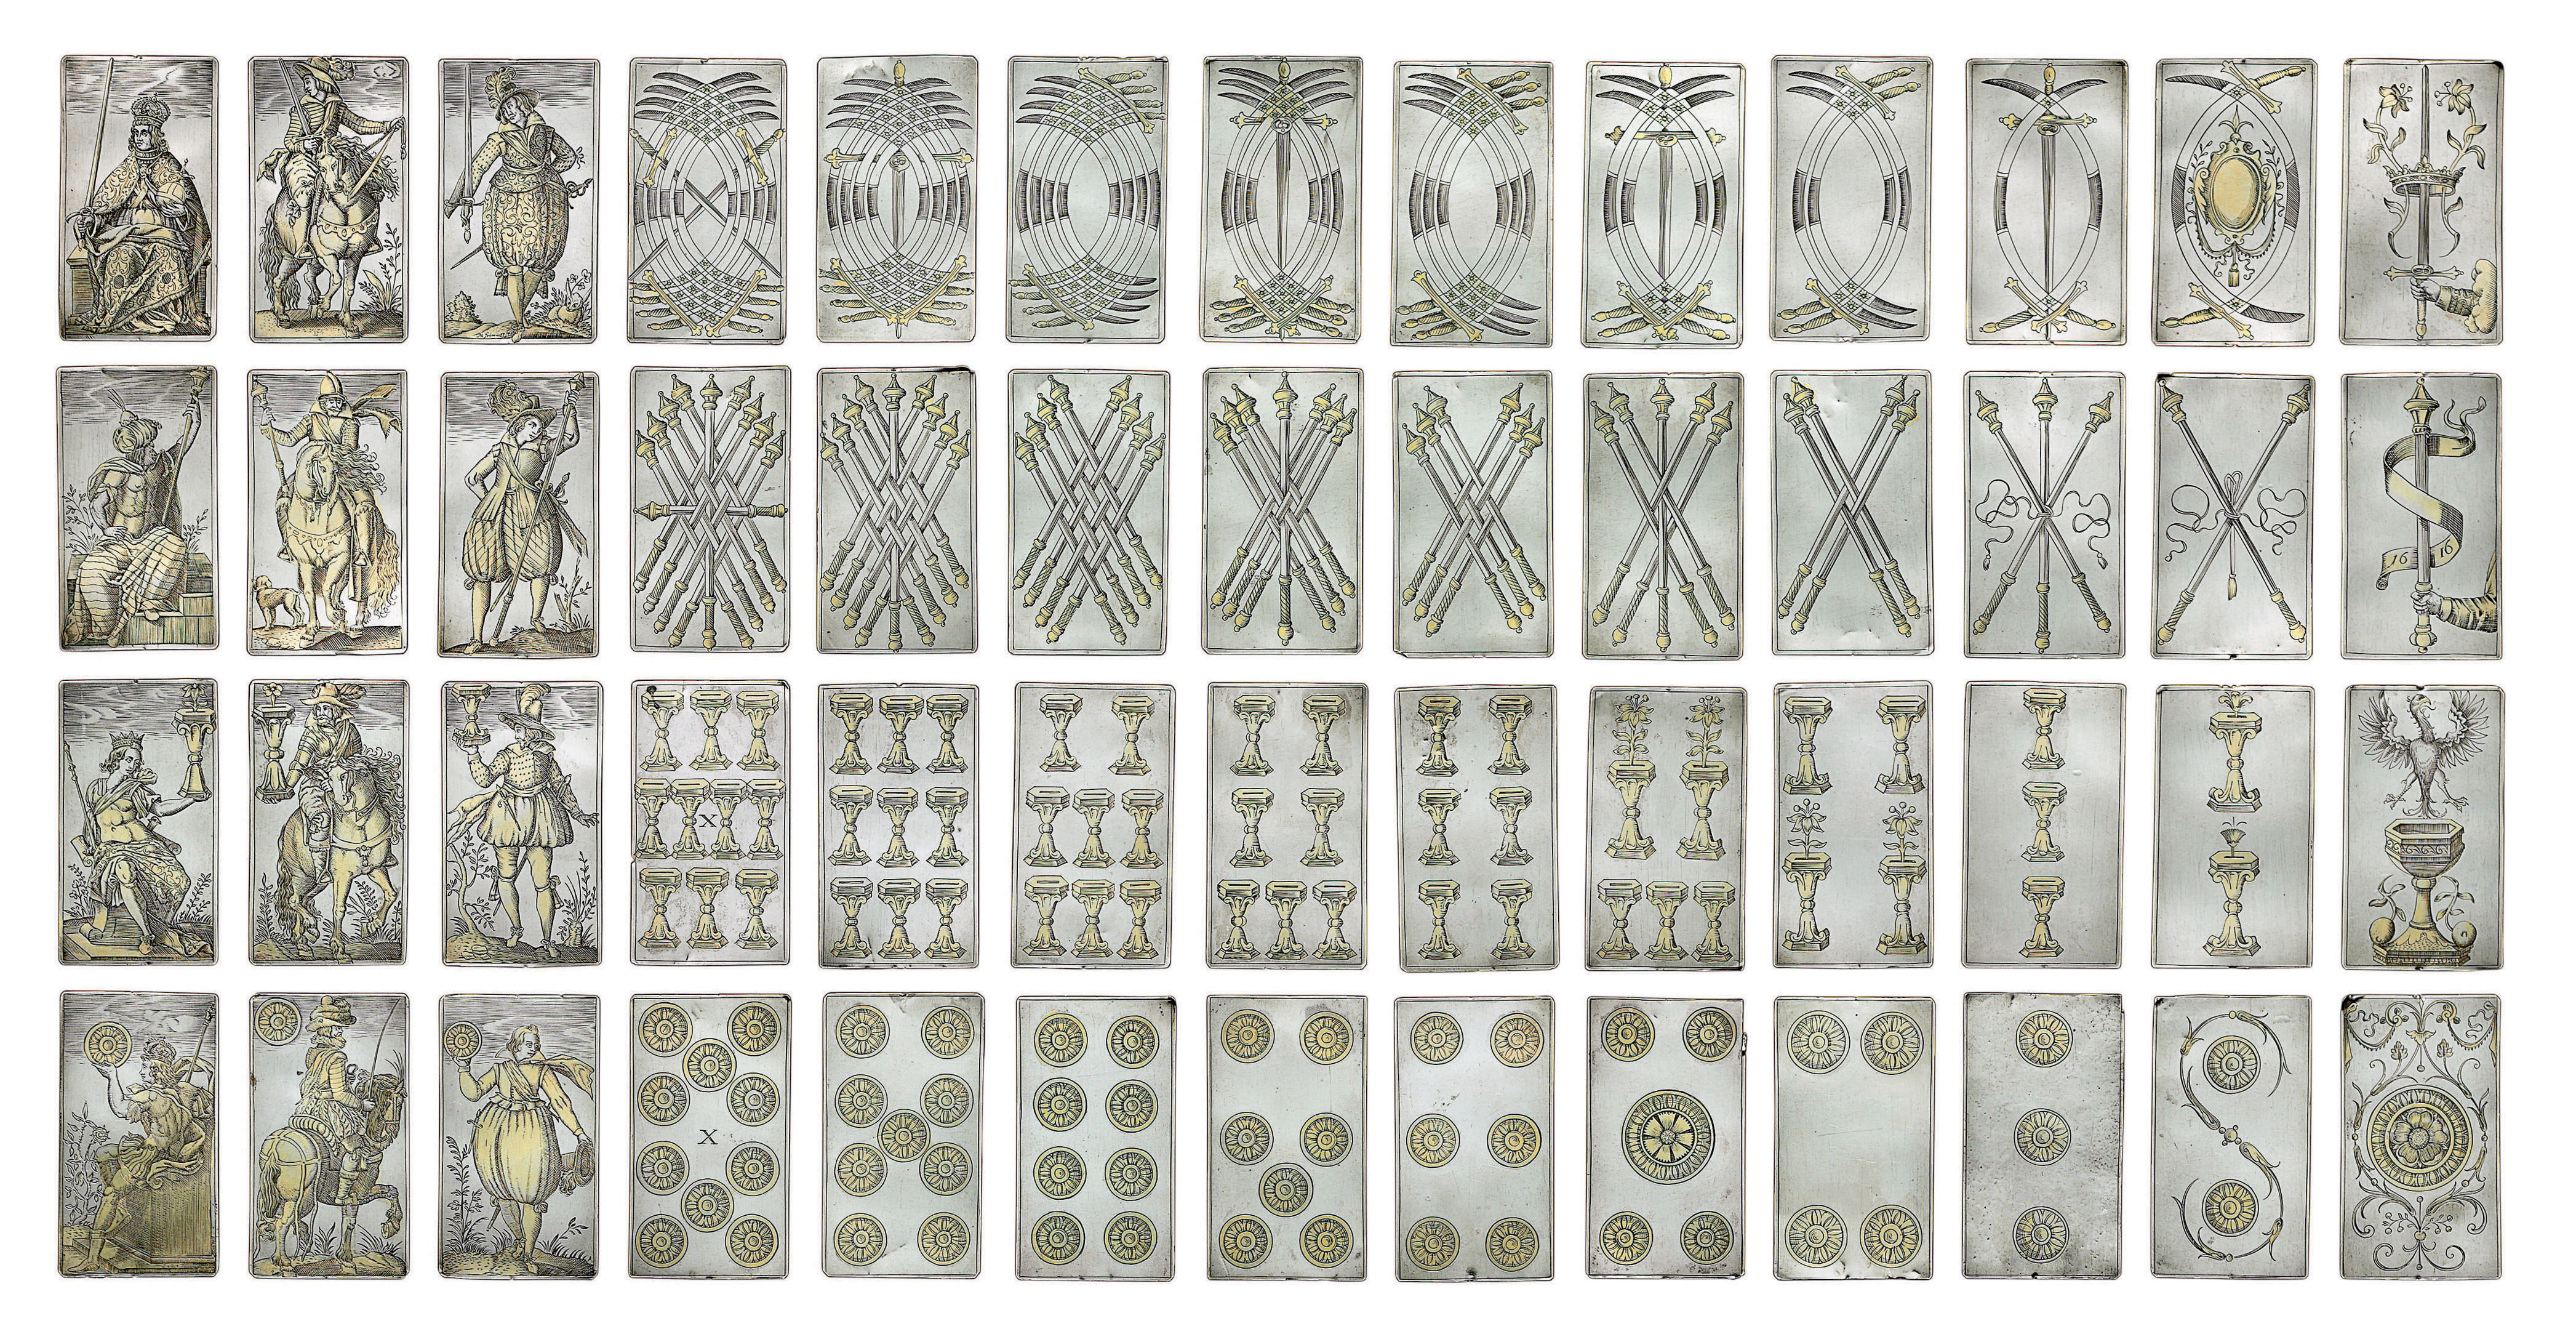 AN EXTREMELY RARE SET OF GERMAN ENGRAVED AND PARCEL-GILT SILVER PLAYING CARDS